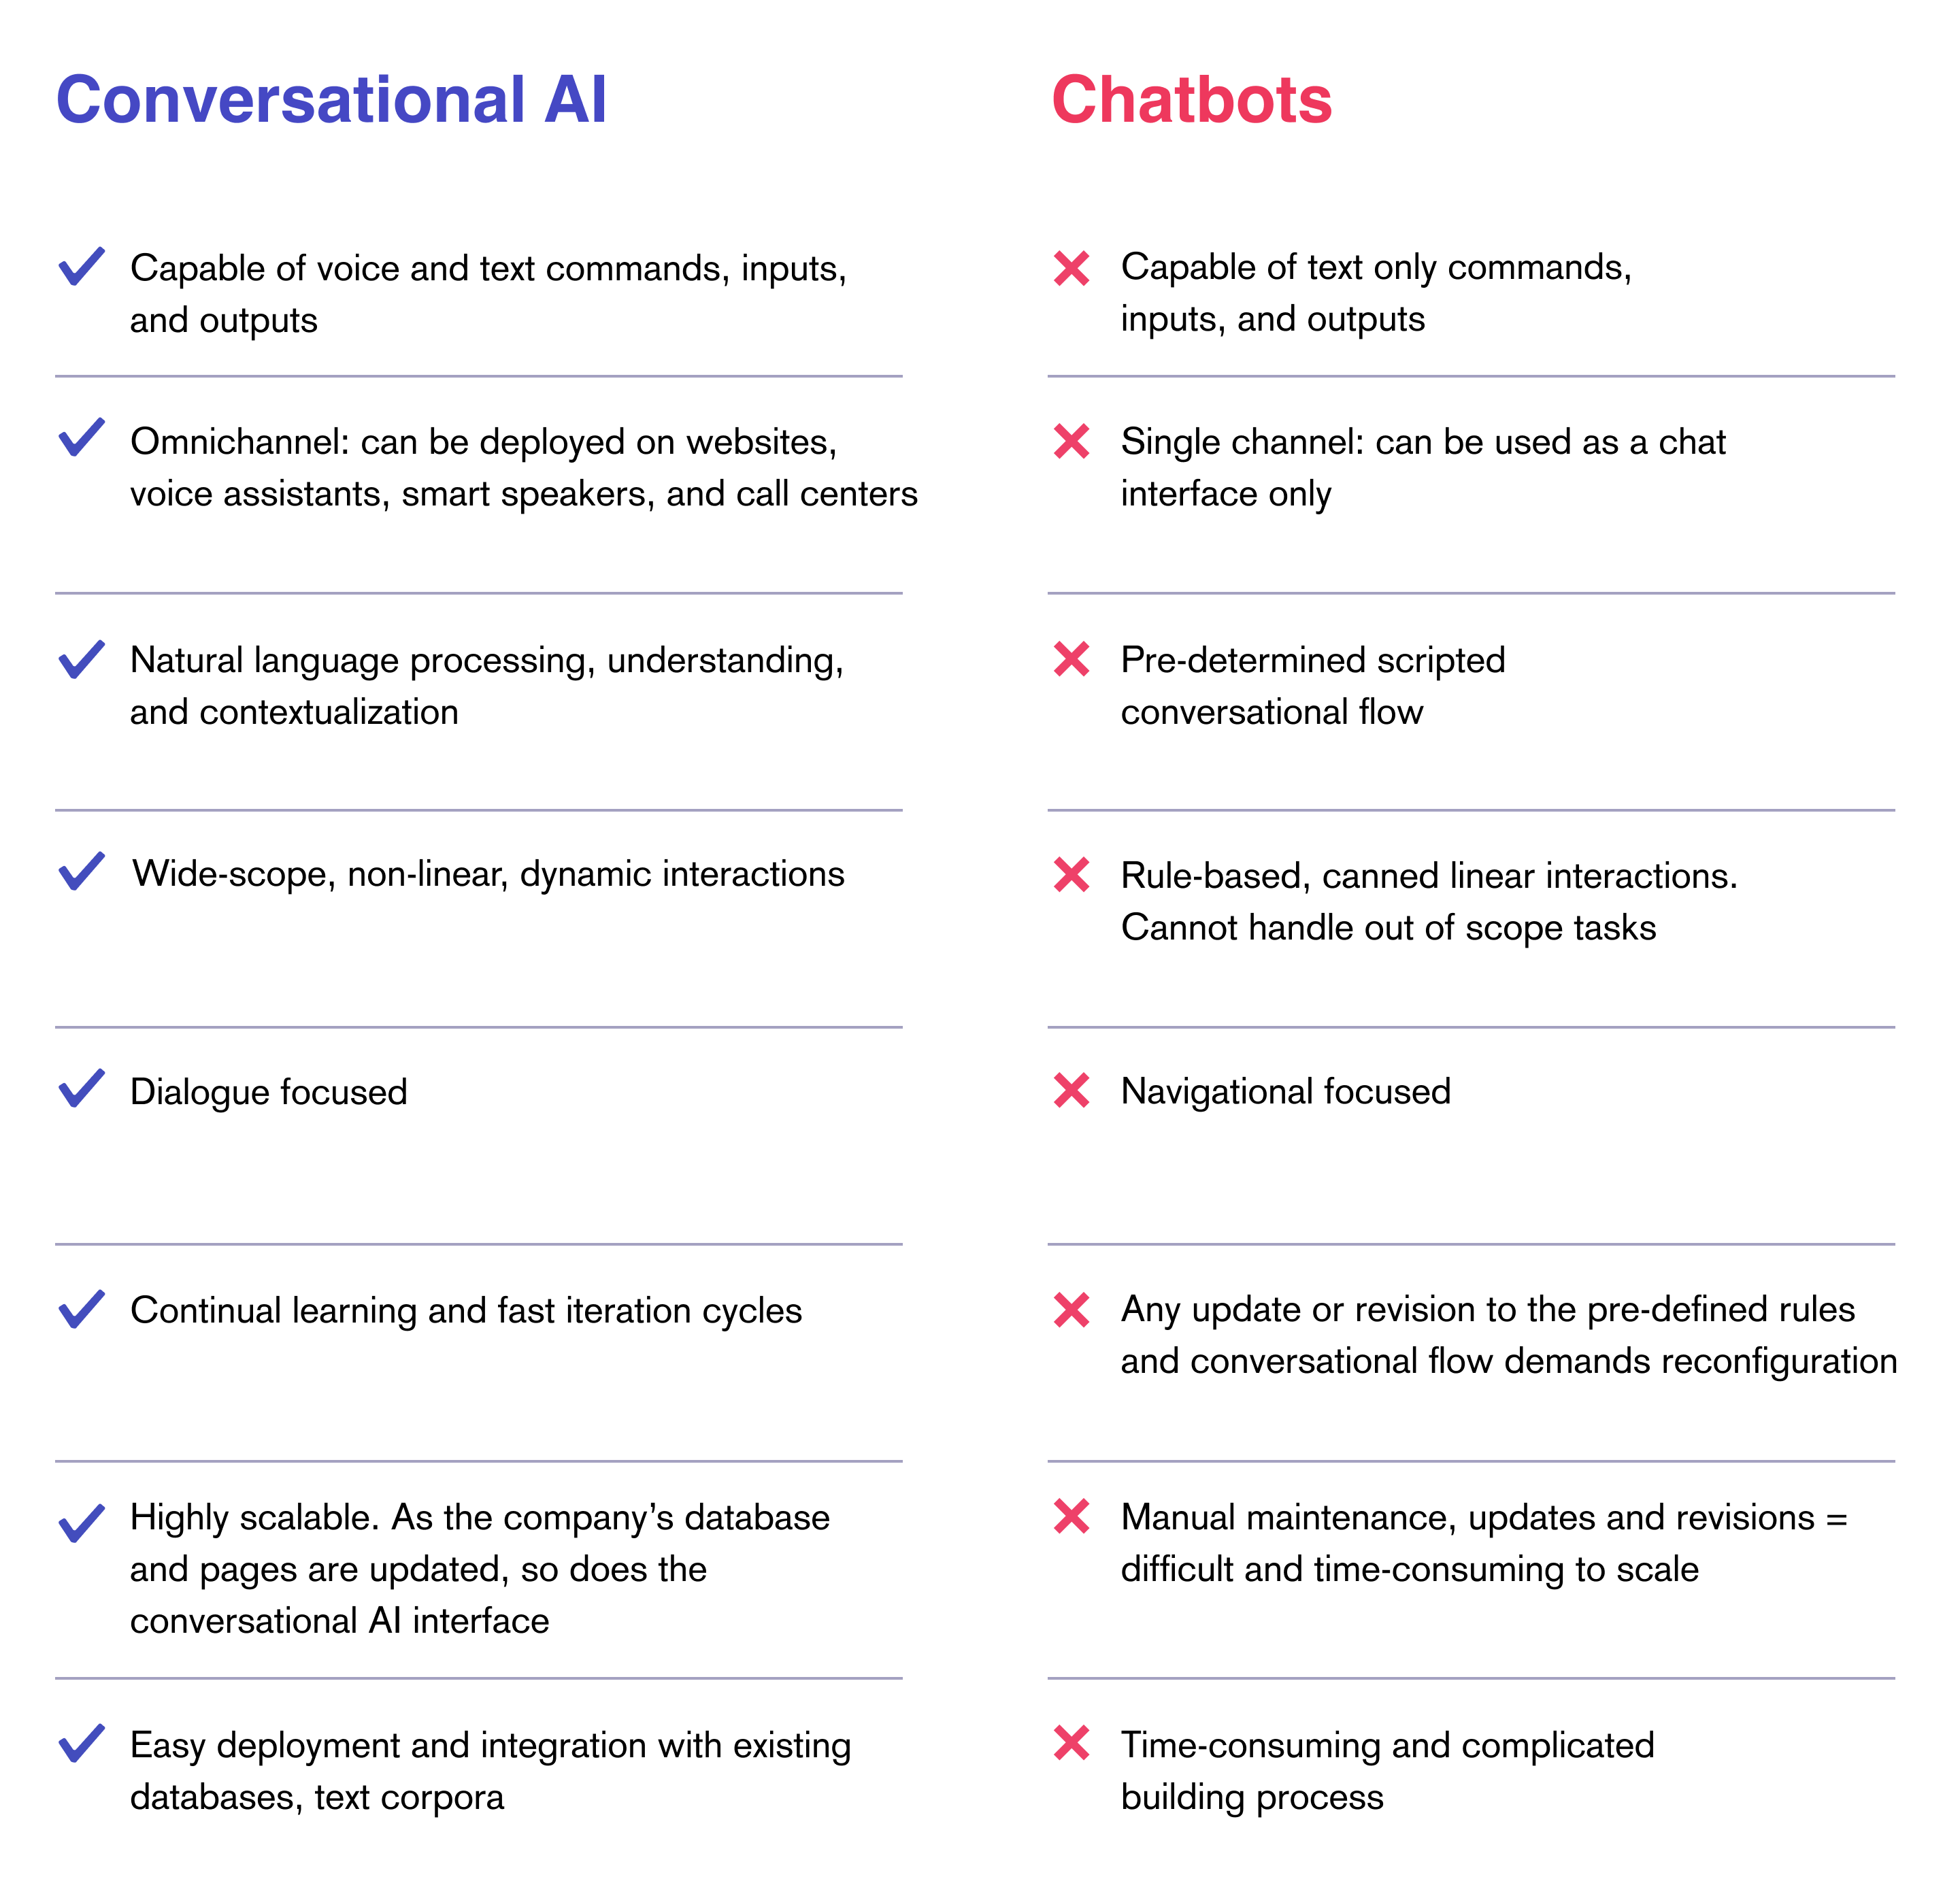 Conversational AI Vs. Chatbots comparison chart